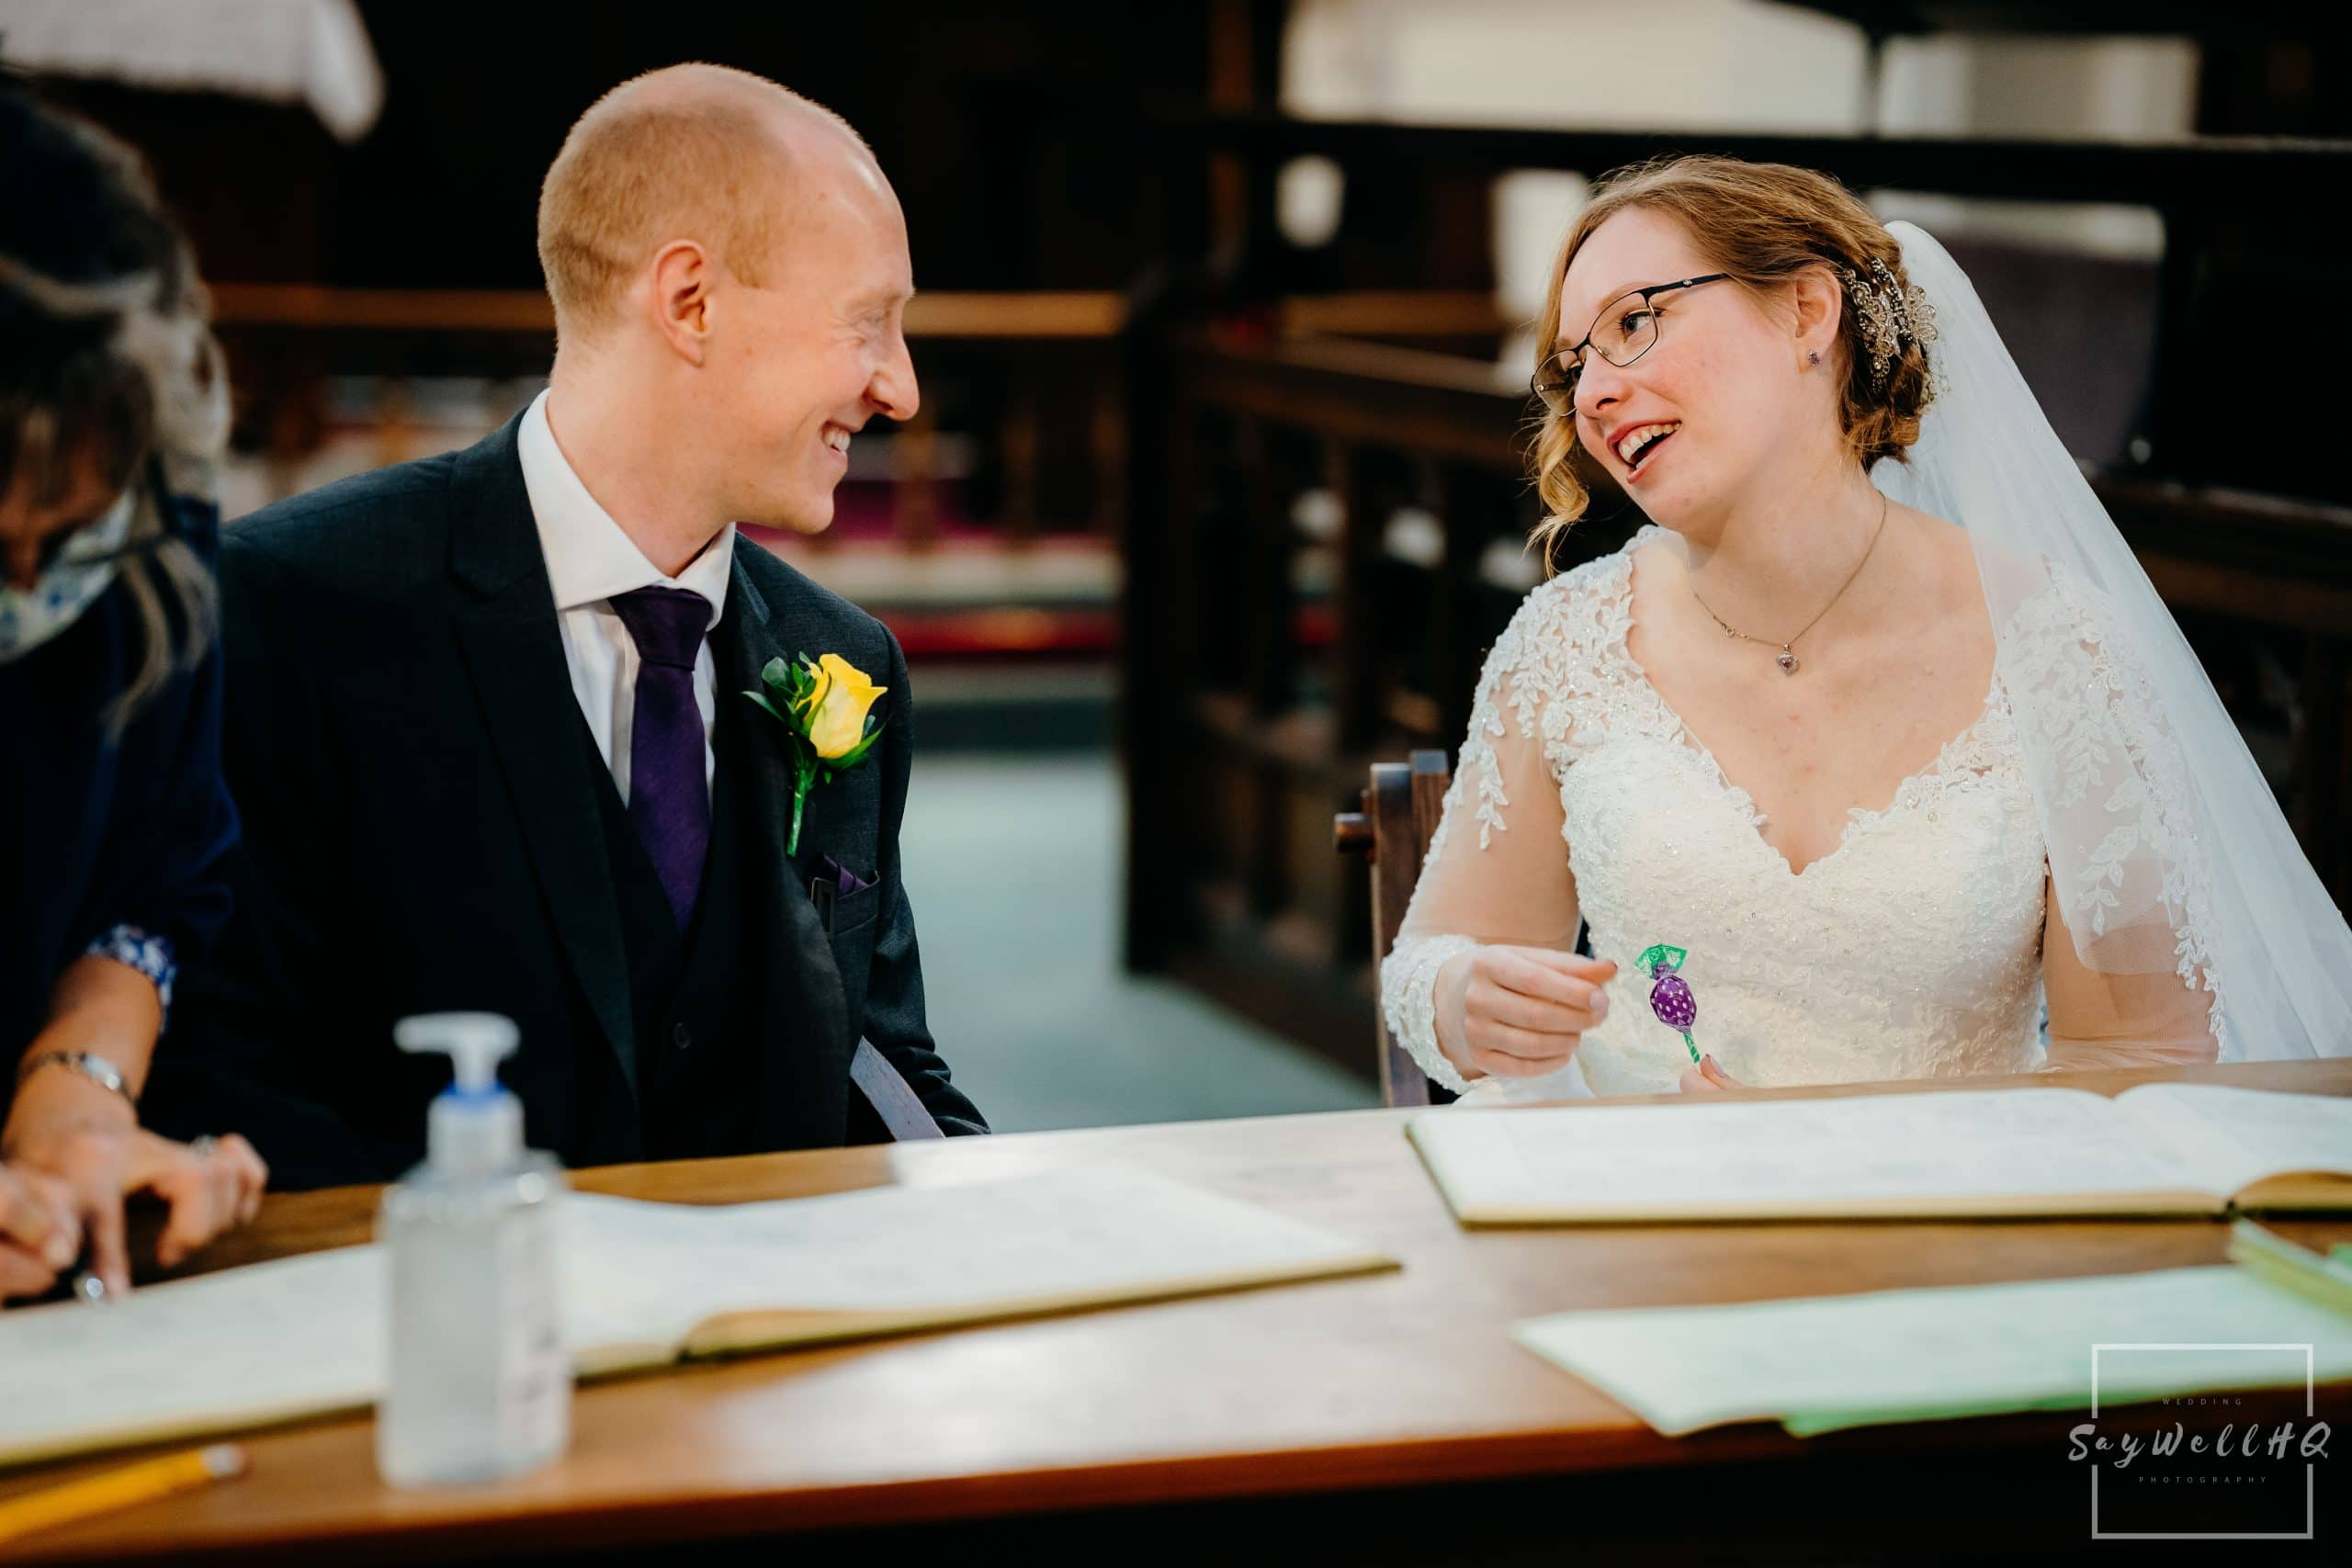 Bride and groom chat away during the signing of the register at their micro wedding at St Judes Church in Mapperley Nottingham